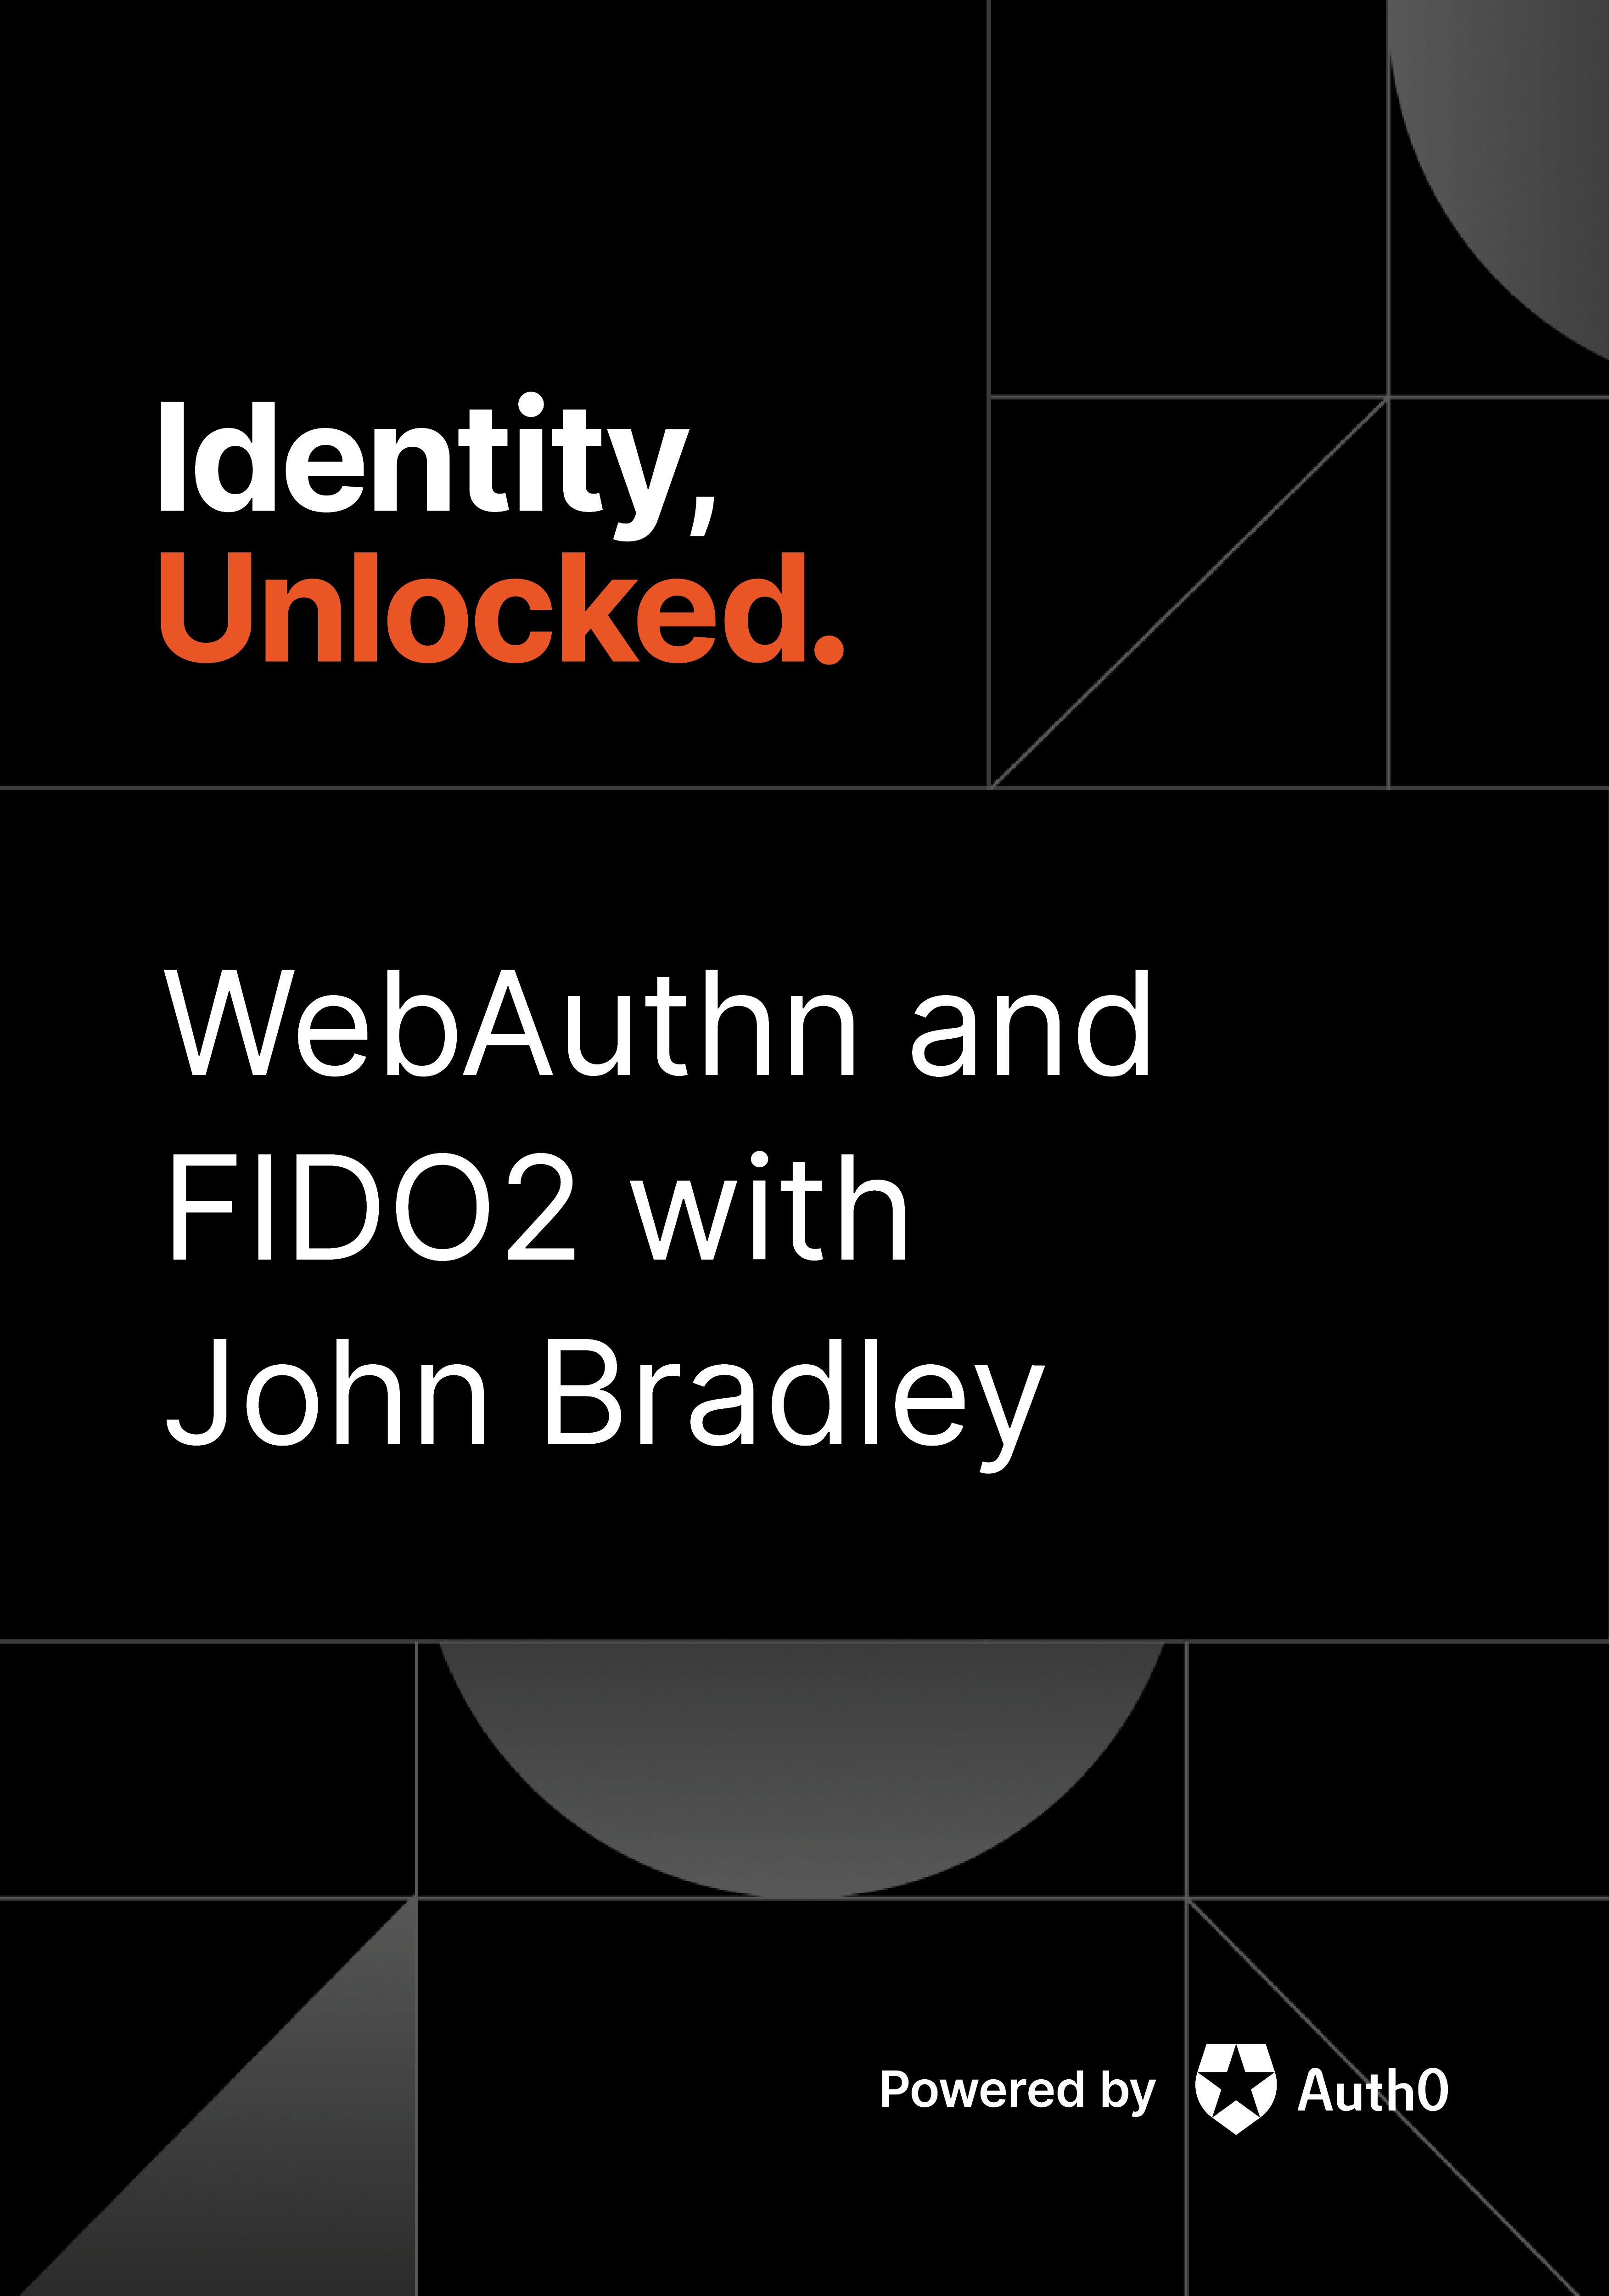 WebAuthn and FIDO2 with John Bradley